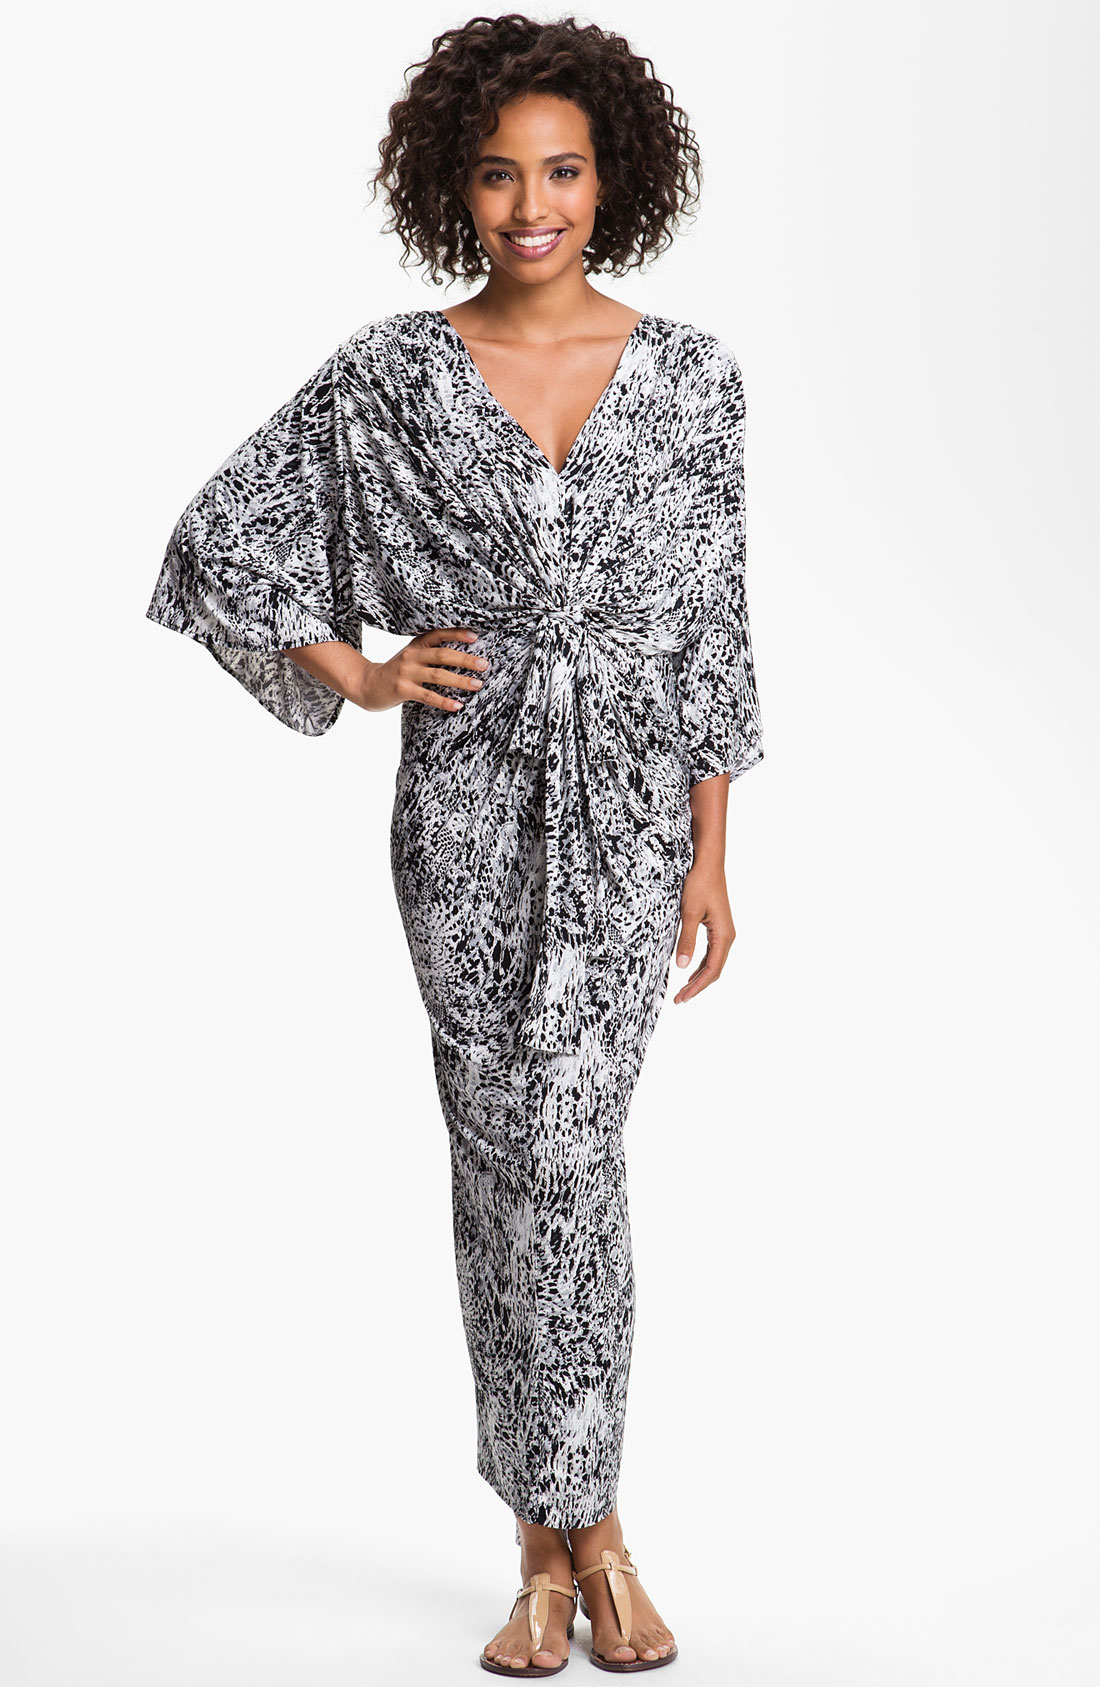 Kimono Maxi Dress Cocktail Dresses 2016